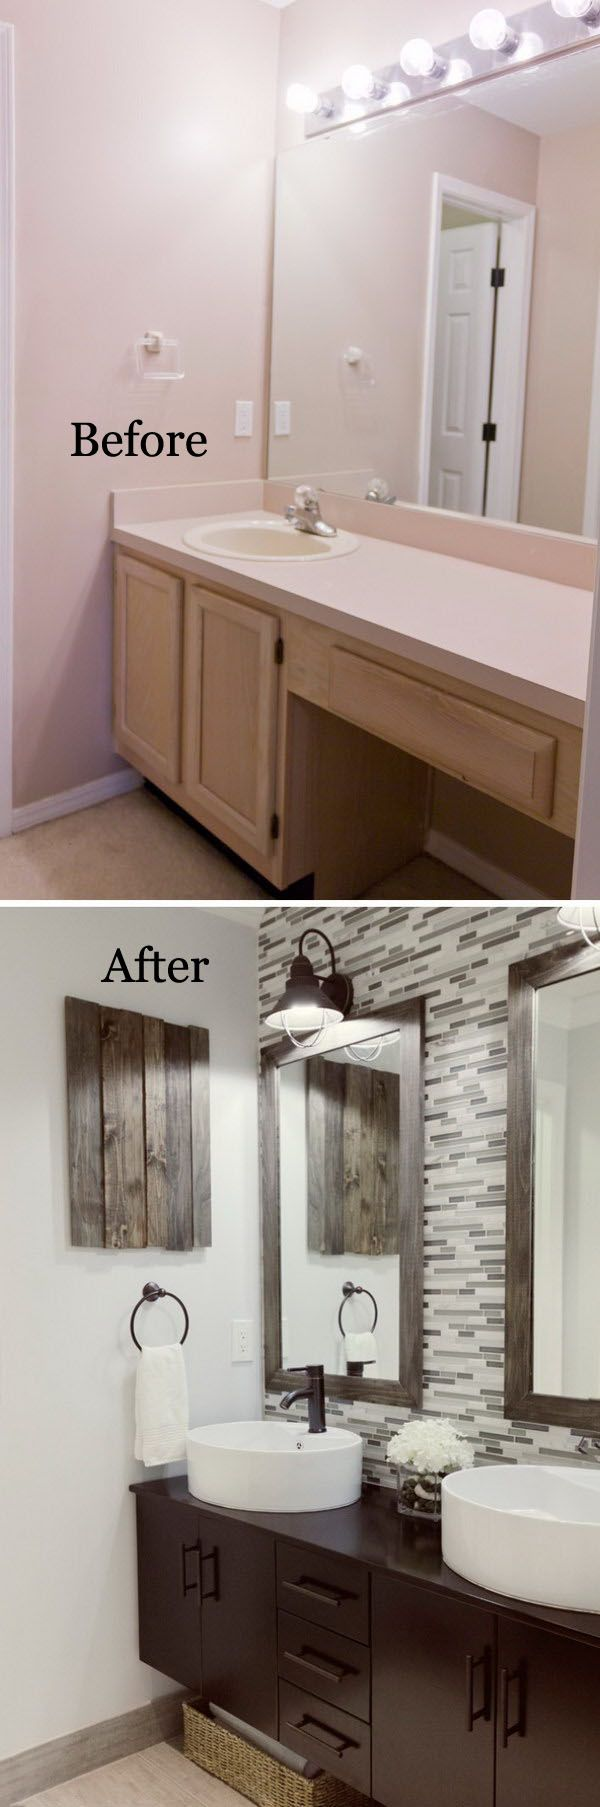 Diy Bathroom Remodel Photos best 25+ diy bathroom remodel ideas on pinterest | rust update